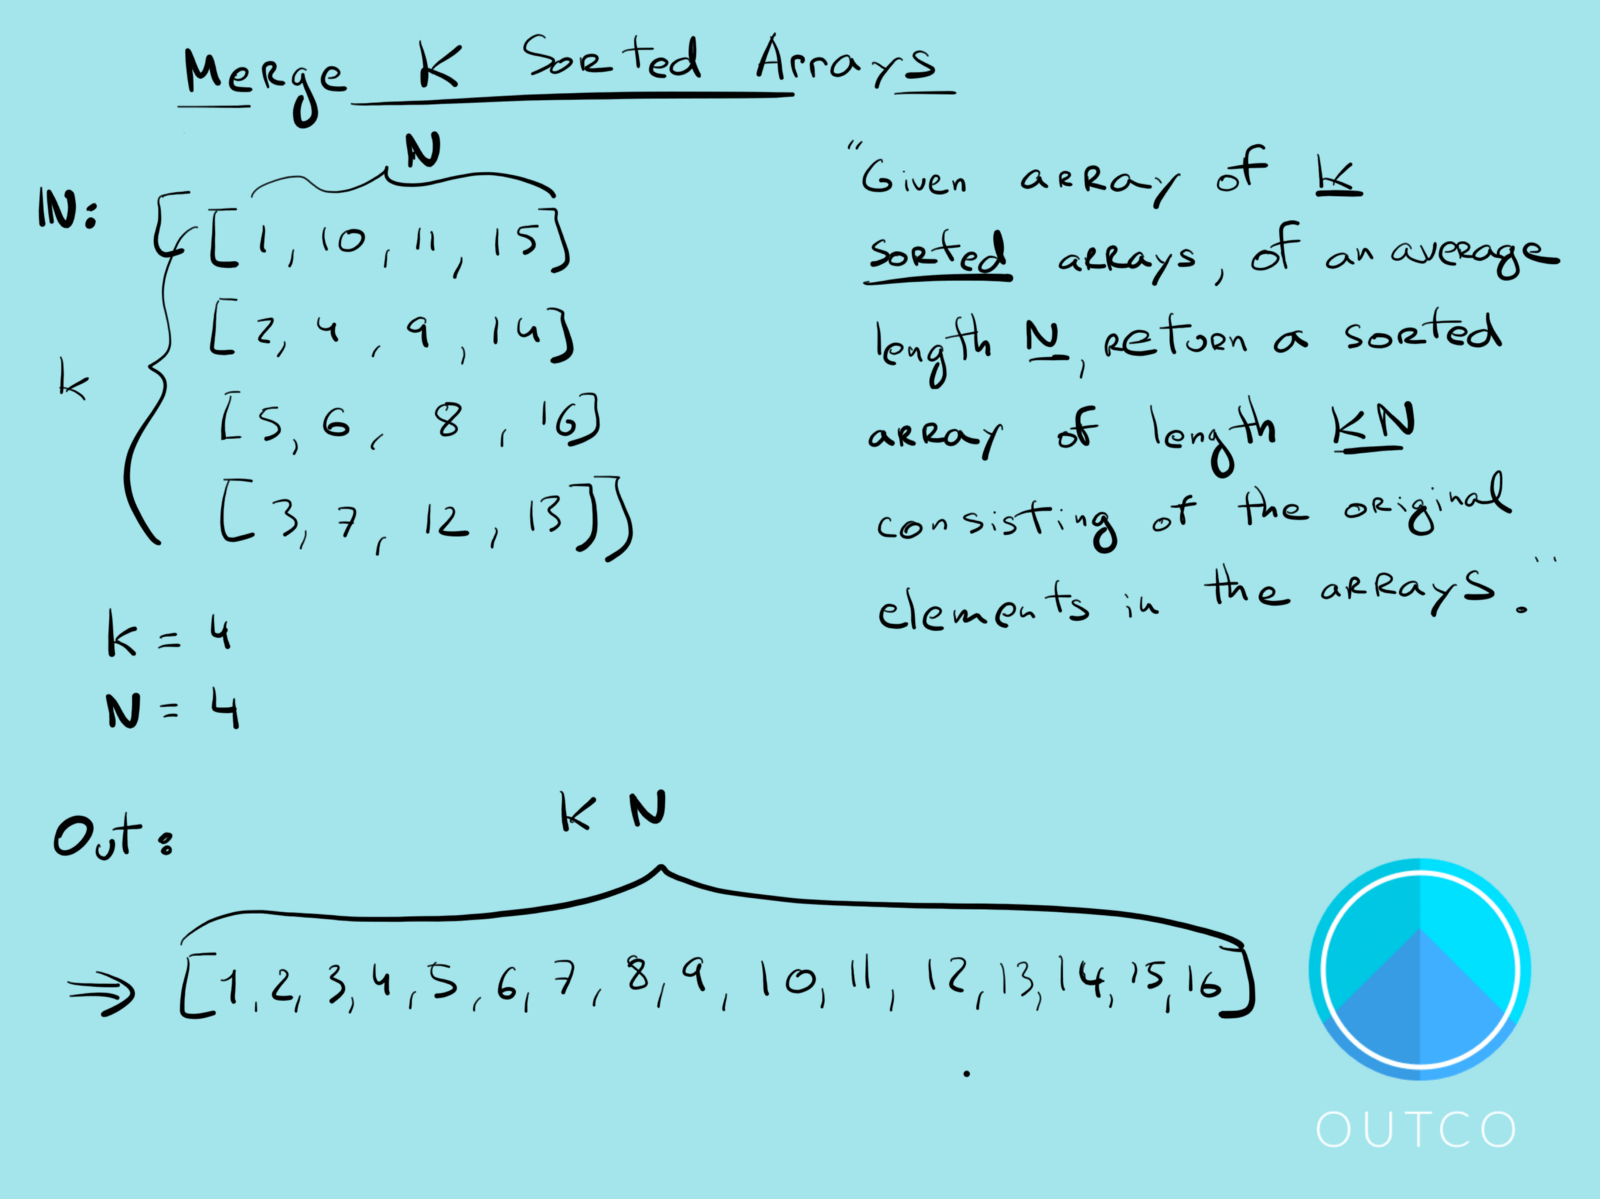 1 6 7 8 How To Merge K Sorted Arrays Outco Medium